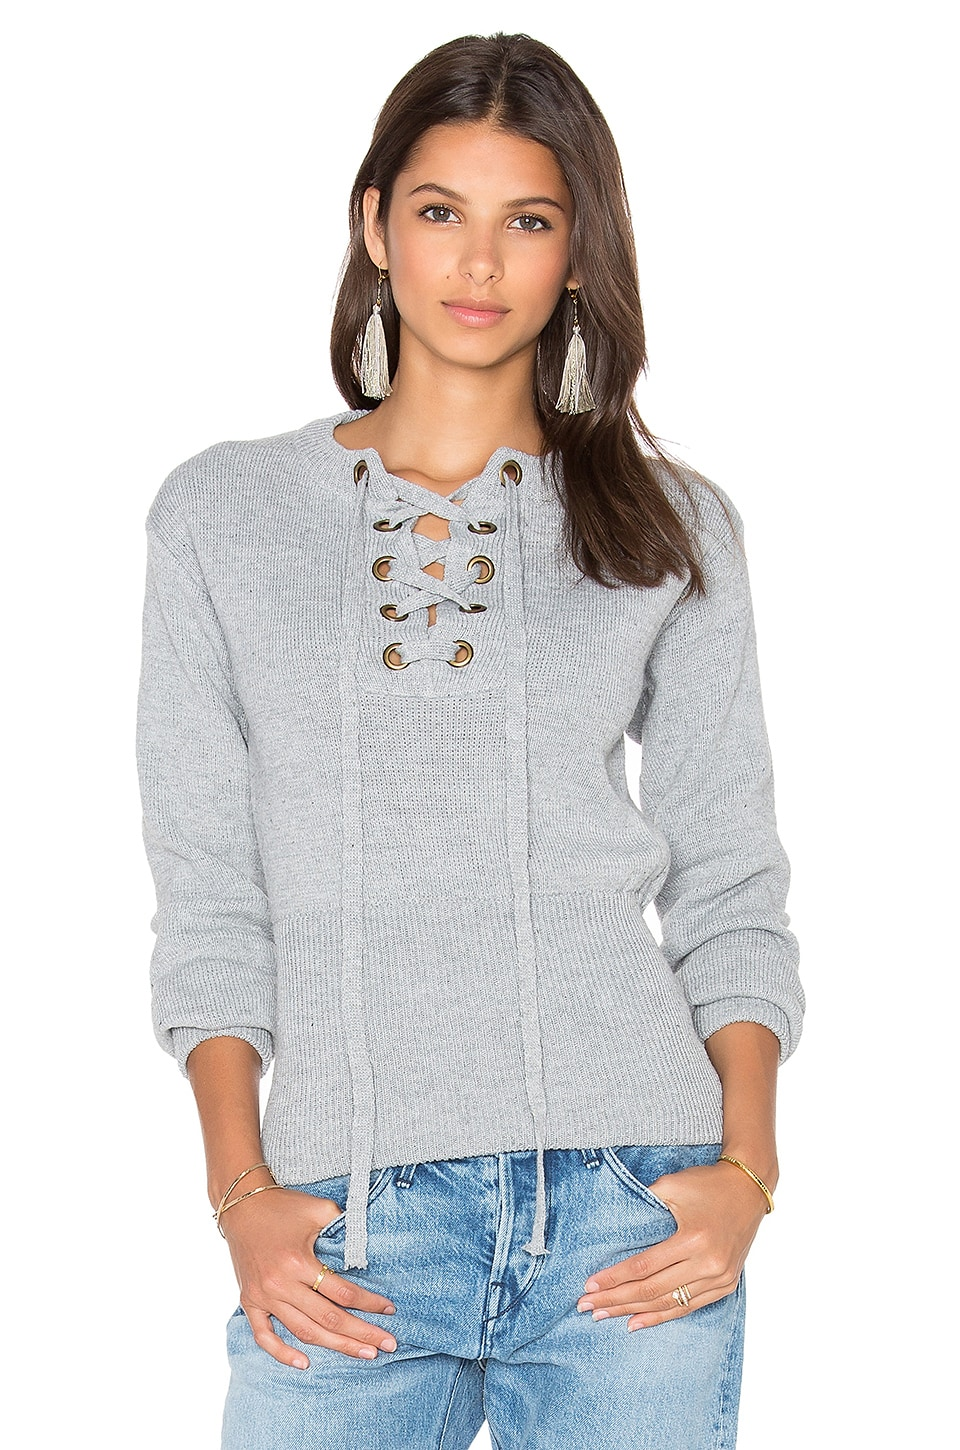 LIONESS Sicily In Dusk Sweater in Grey